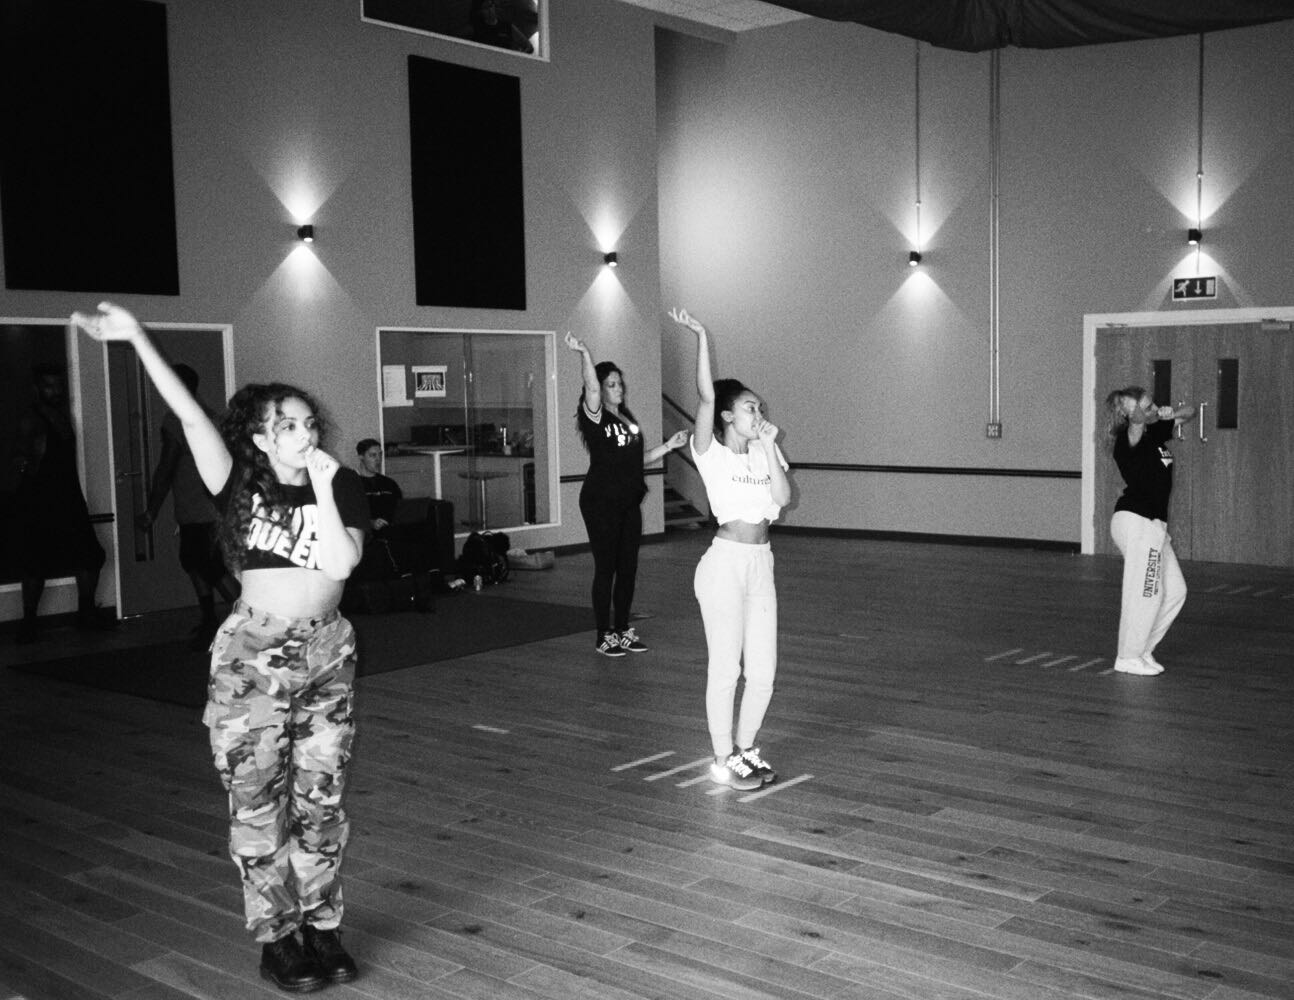 Derby! We're coming for ya next �� #SummerHitsTour x the girls https://t.co/ycx7YtMvPE